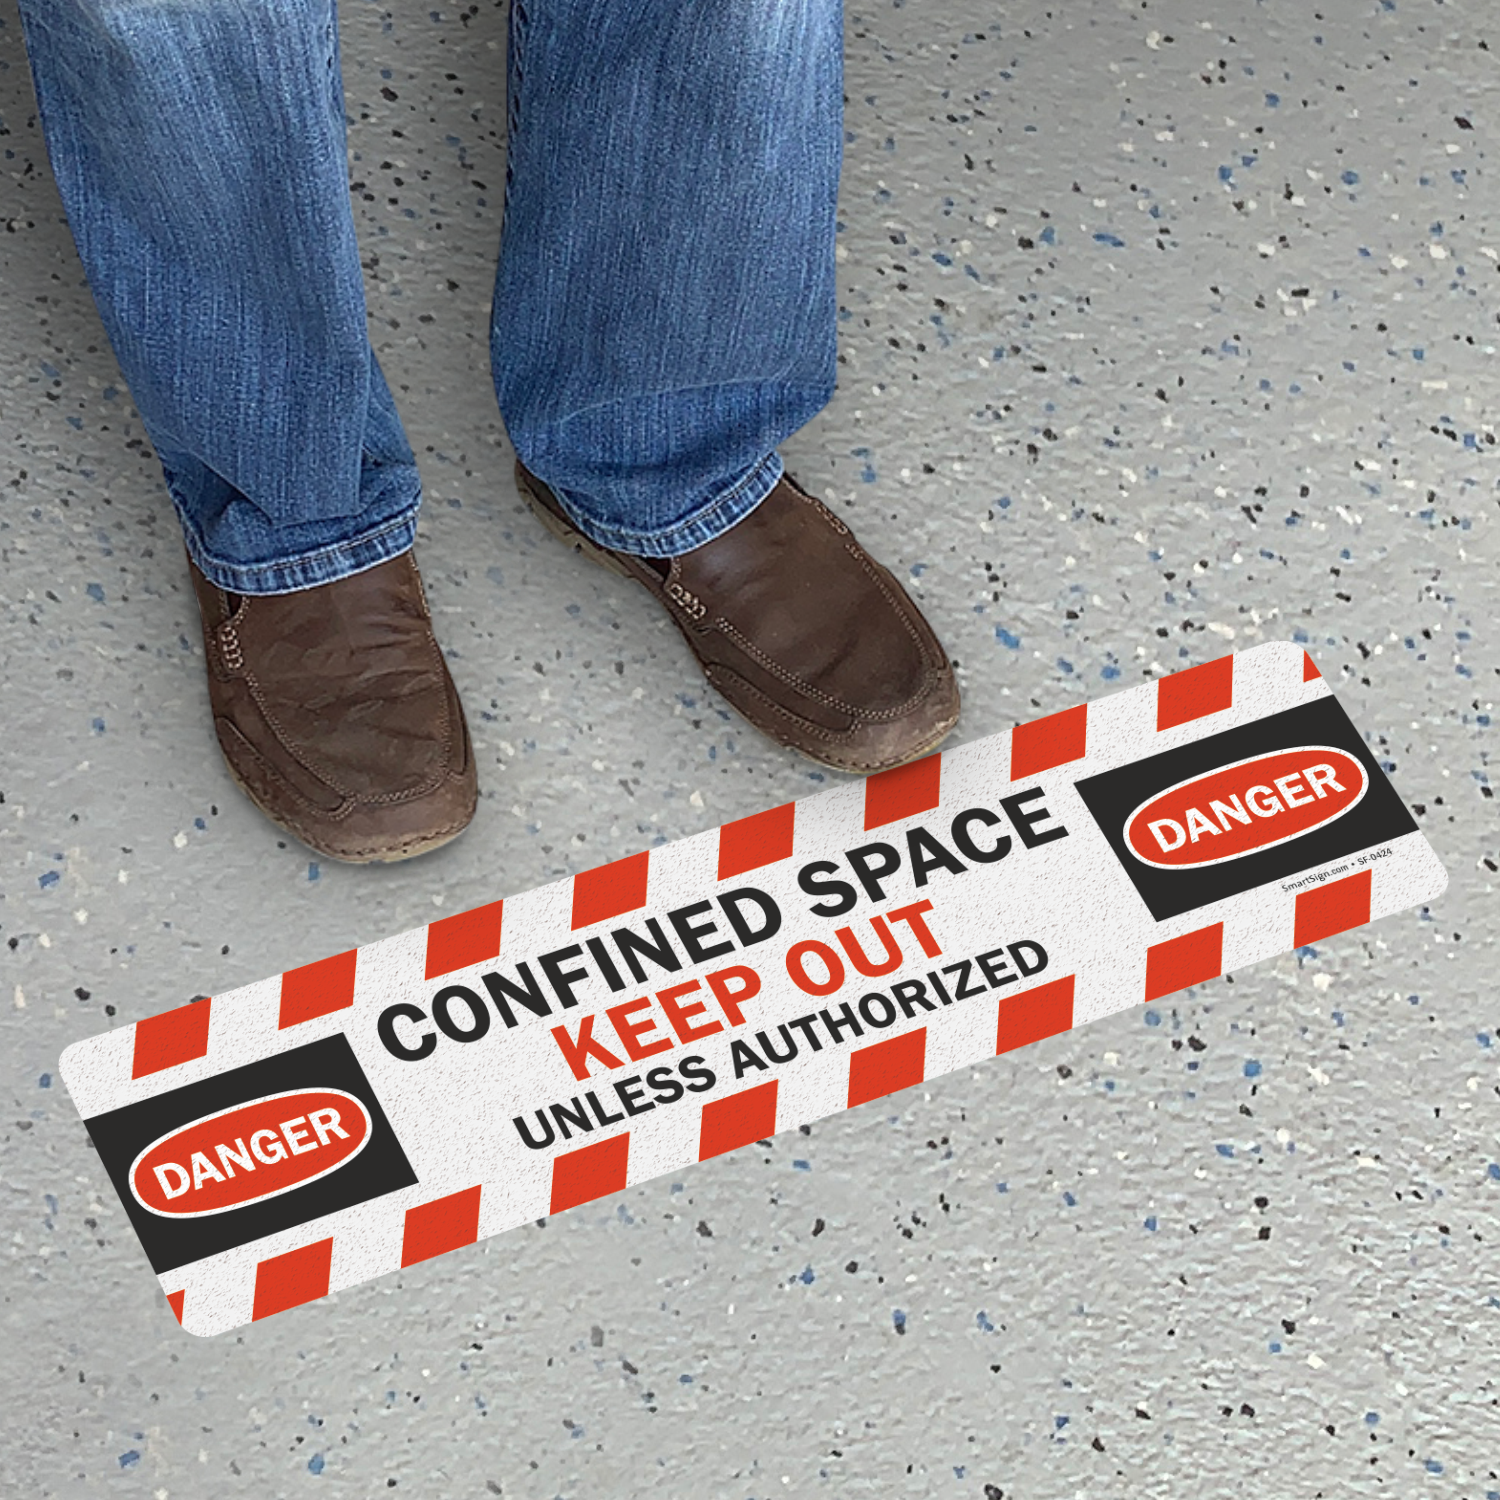 Confined Space Keep Out Unless Authorized Floor Sign